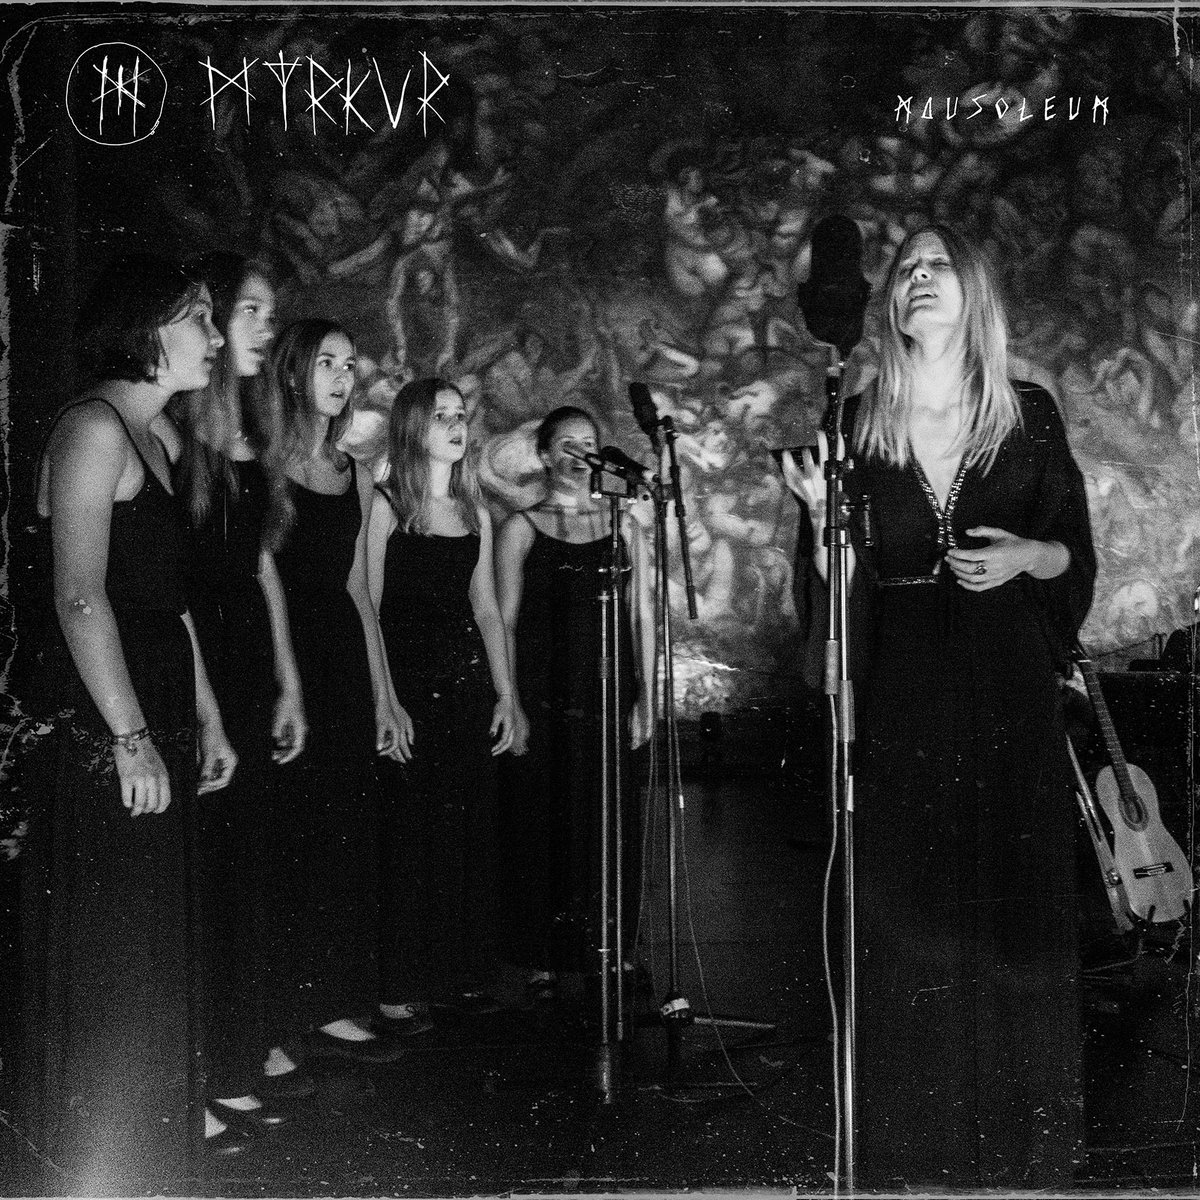 Myrkur, Mausoleum Album Review By Sam Roon